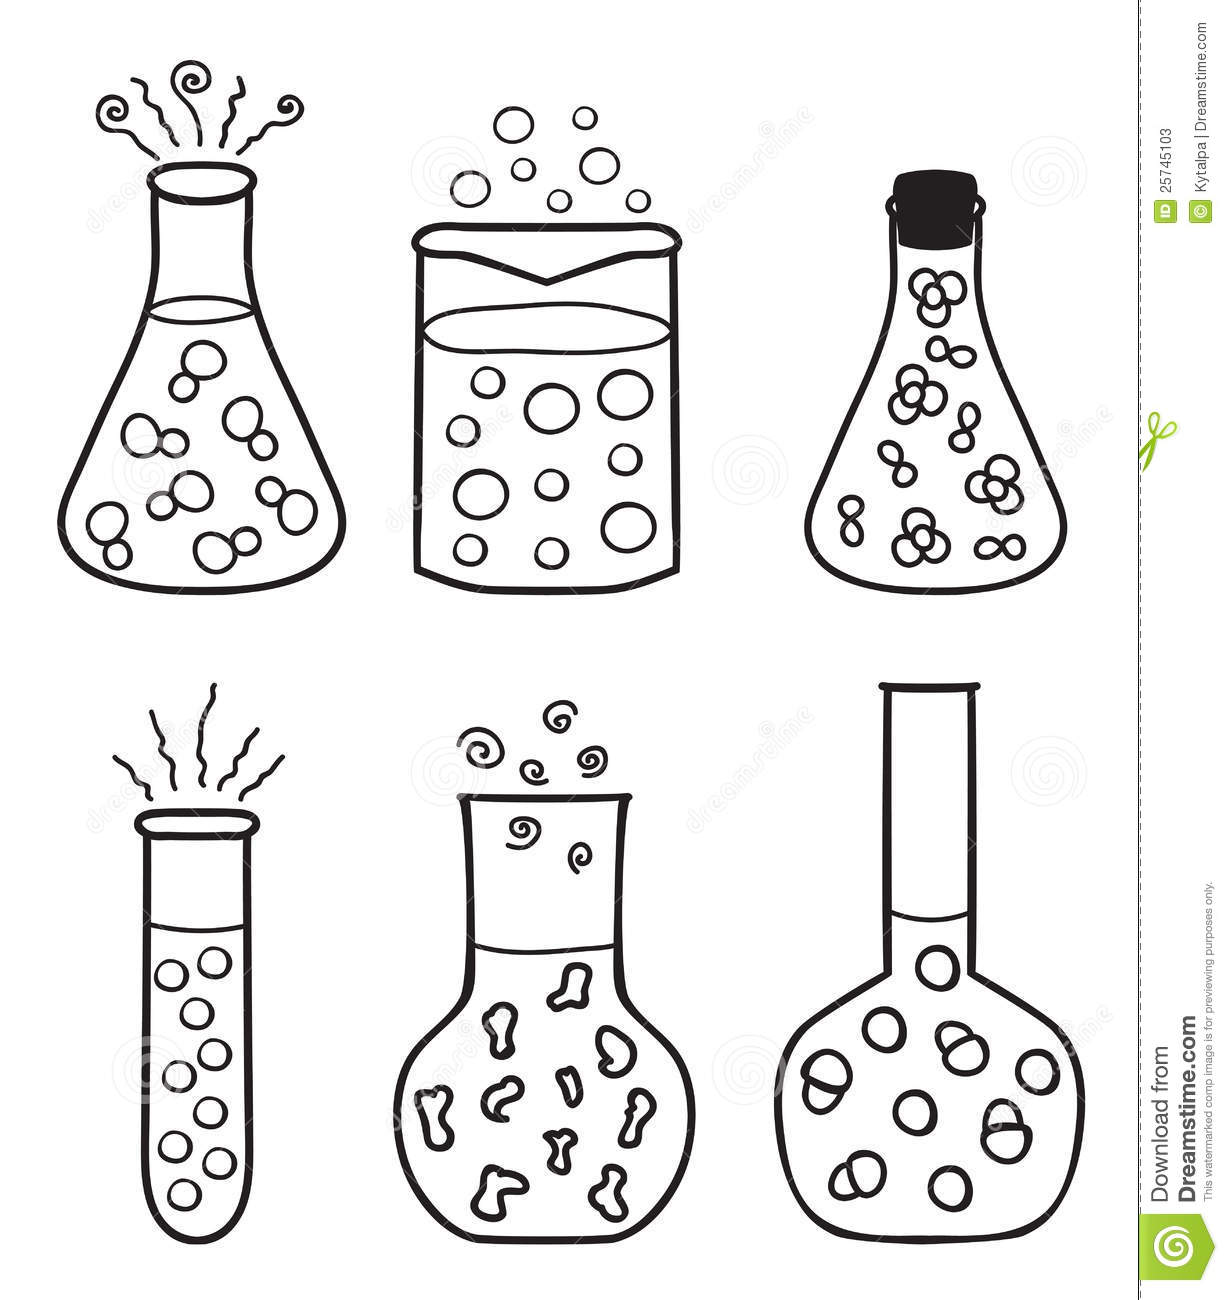 Set of chemical test tubes stock vector. Illustration of